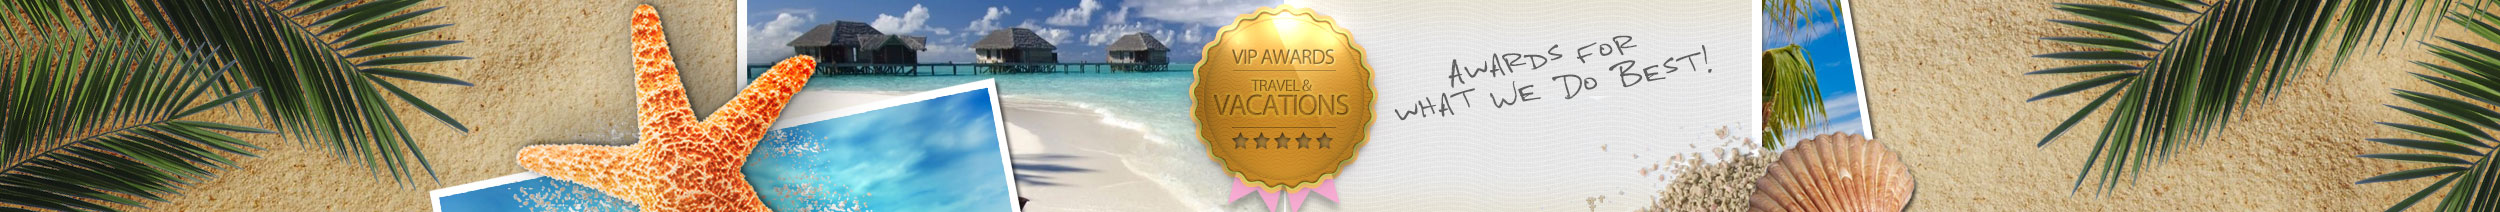 Sandals & Beaches Resorts Star Awards- 2009